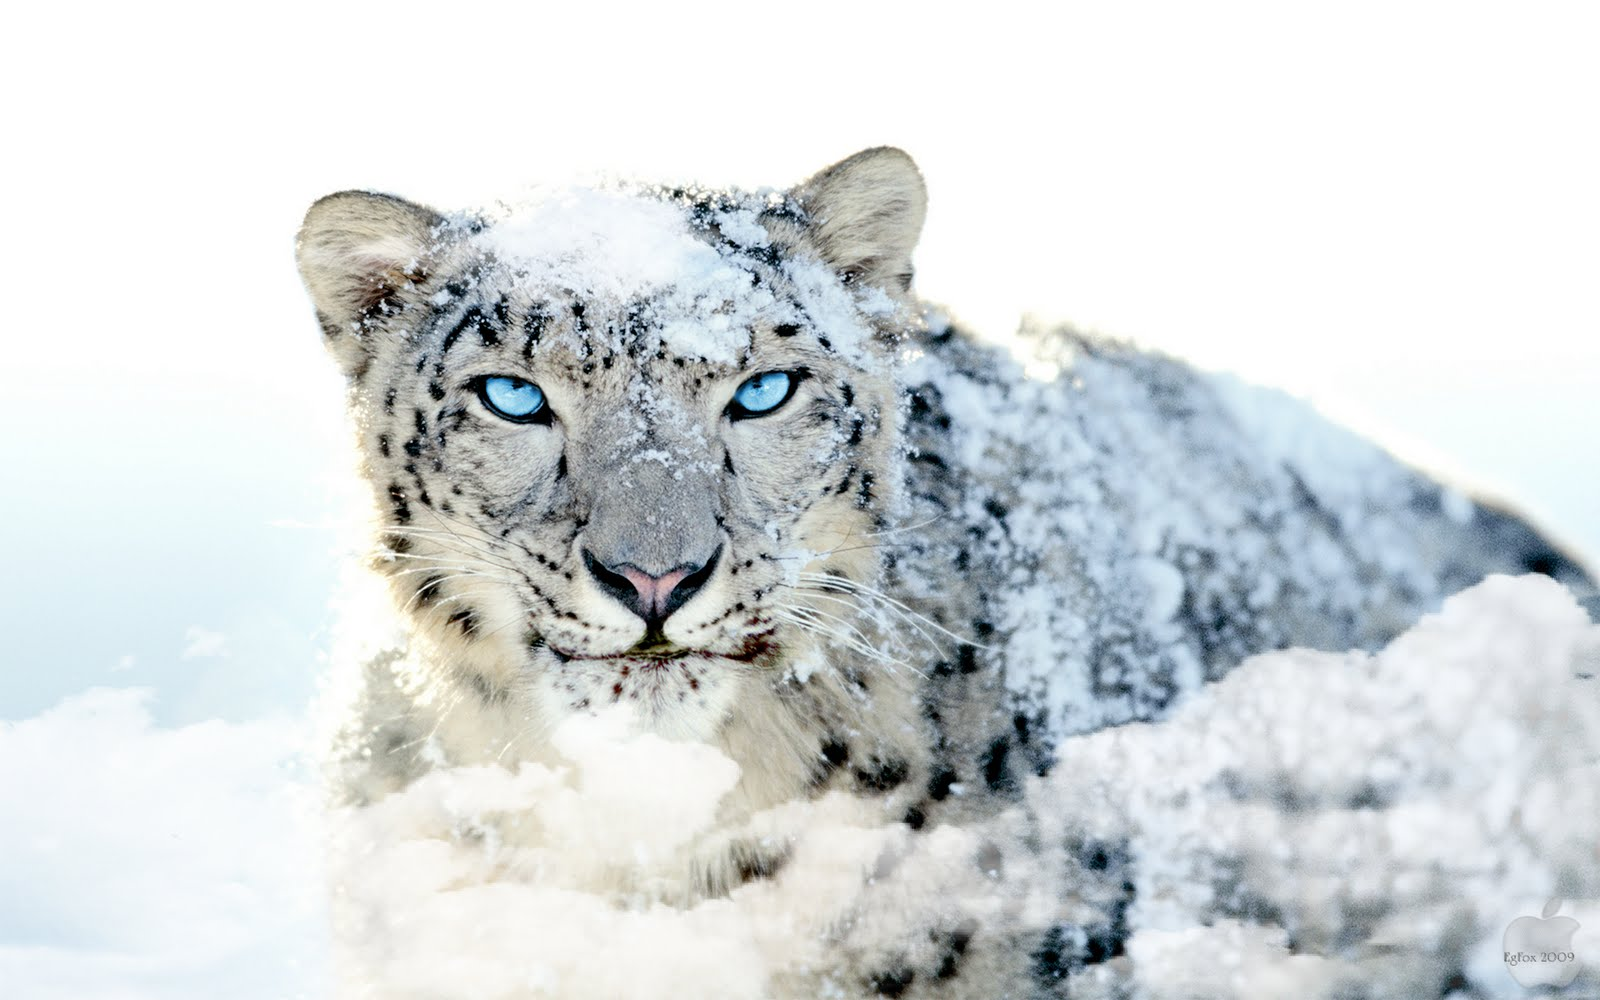 Hd wallpaper for mac - Apple Mac Os X Snow Leopard Wallpaper Click Picture For High Resolution Hd Wallpaper